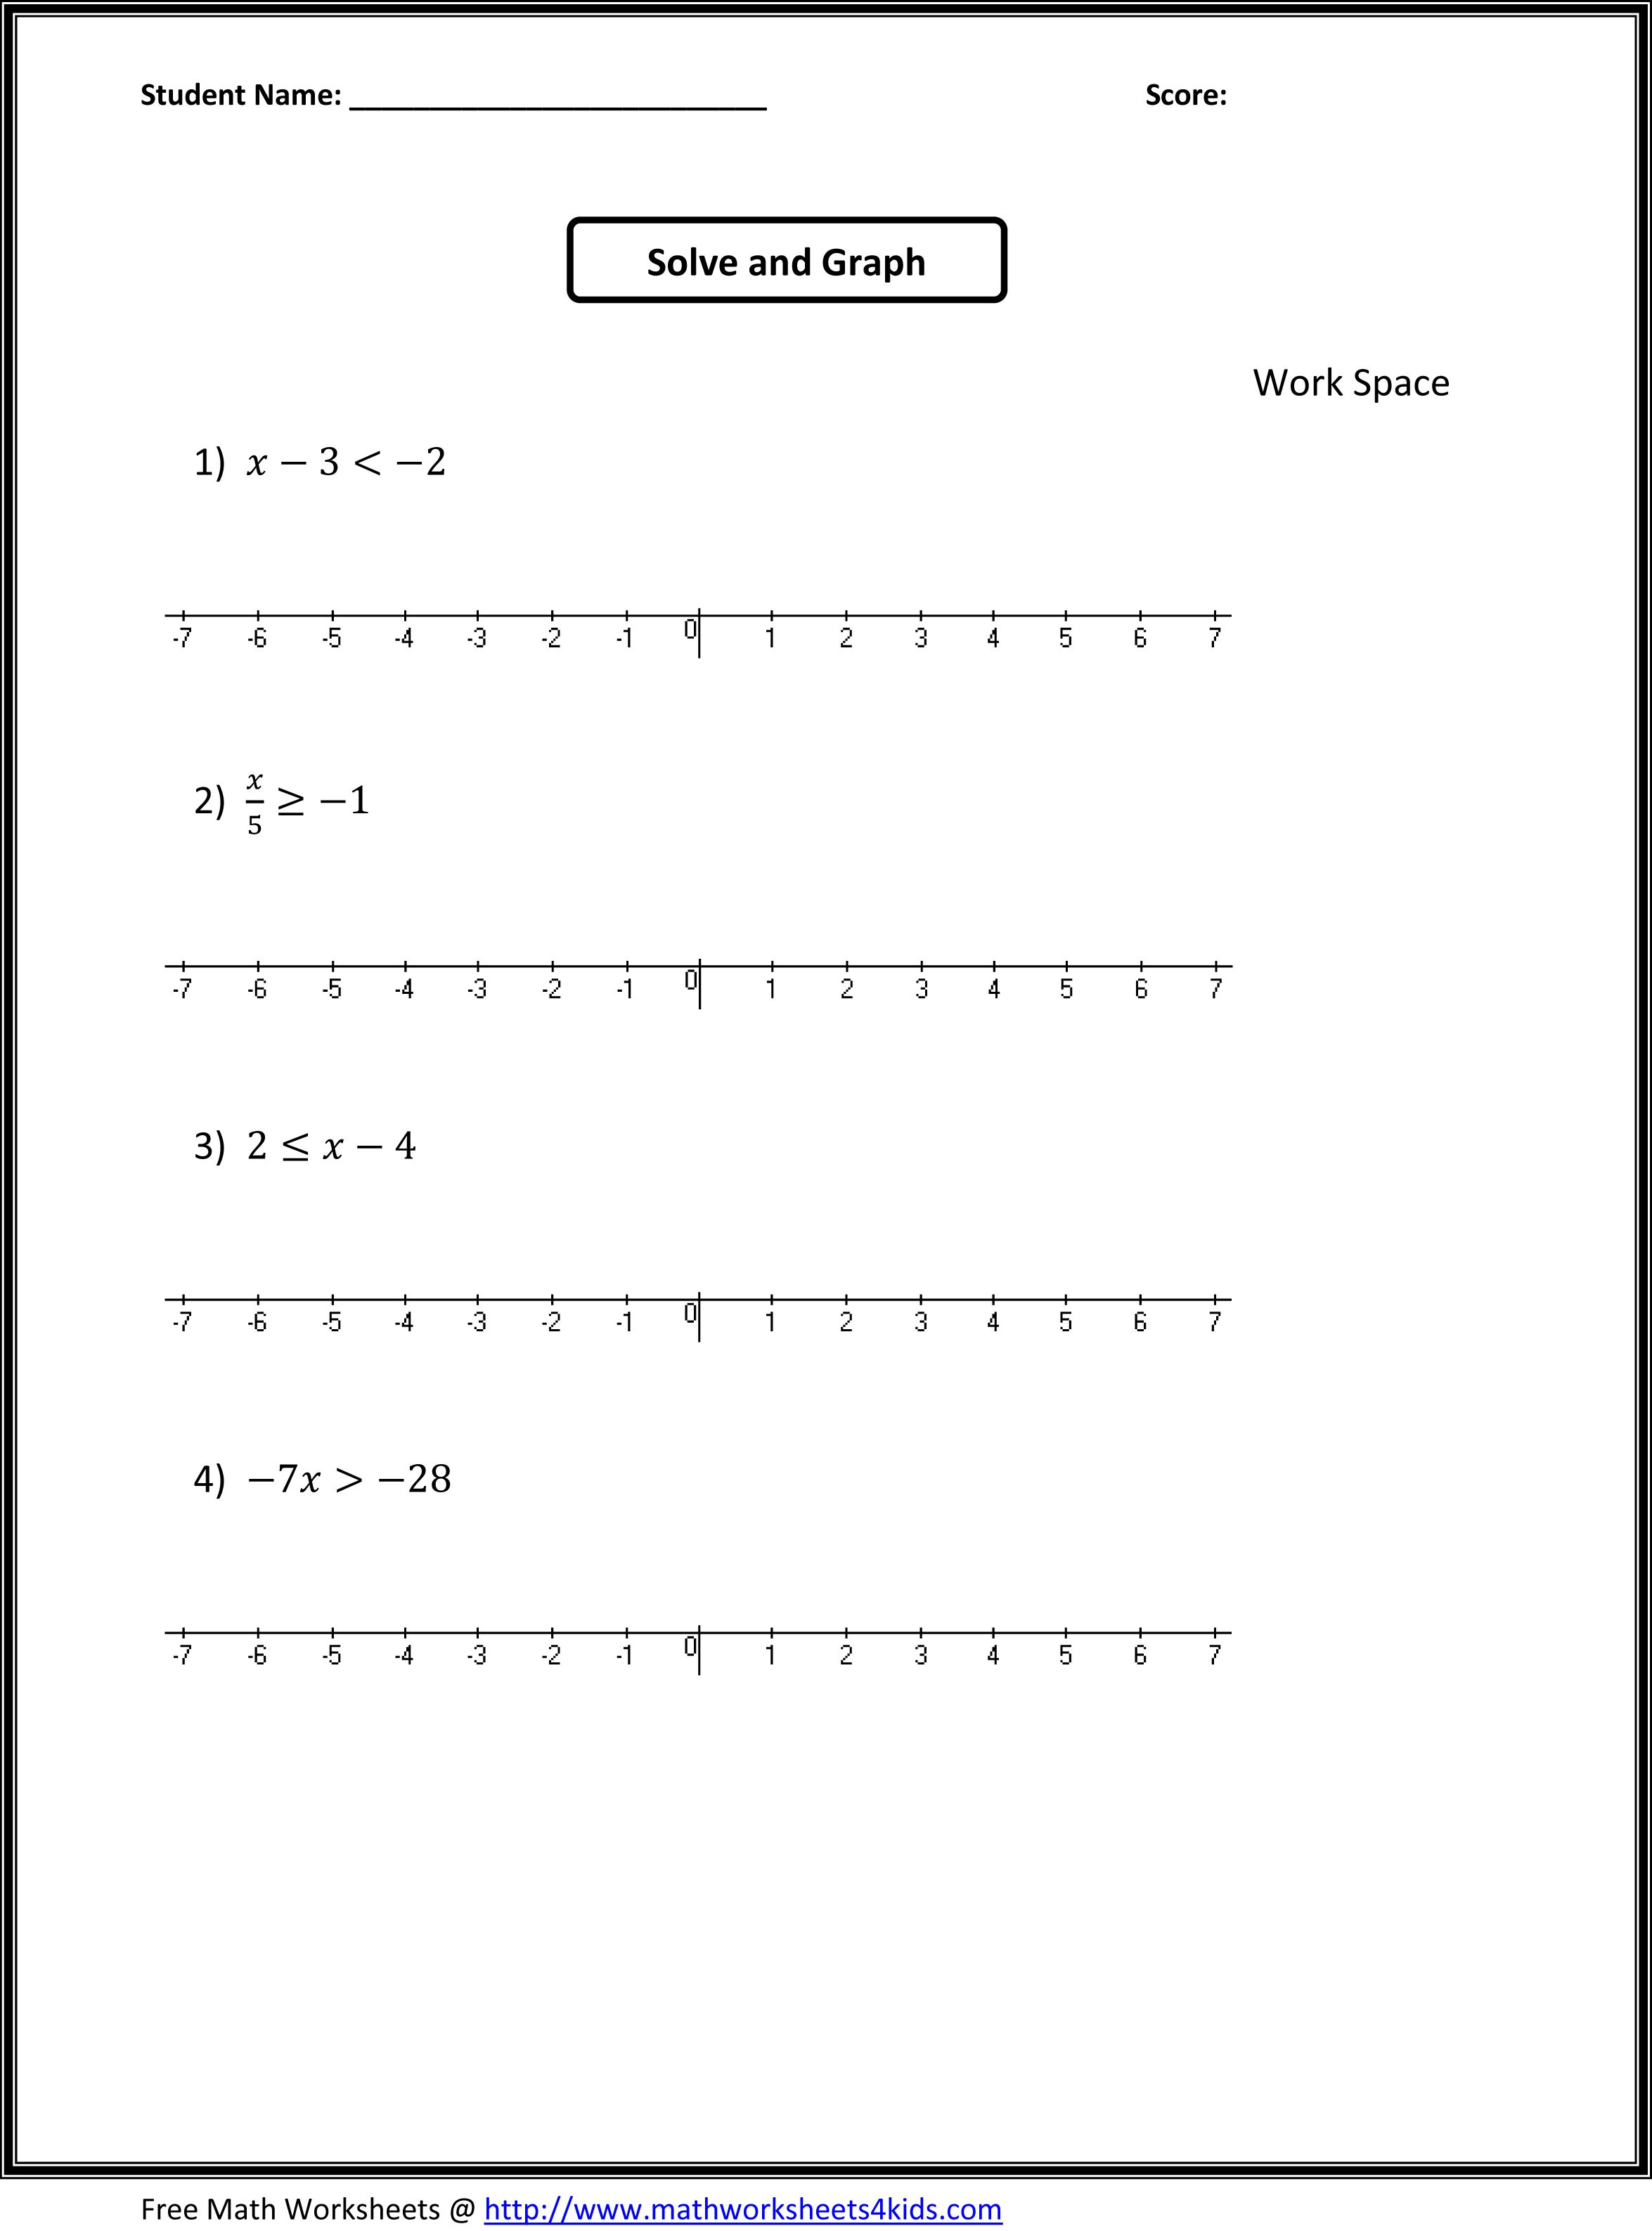 Printables Math Worksheet For 7th Grade 7th grade math worksheets value absolute algebra worksheets